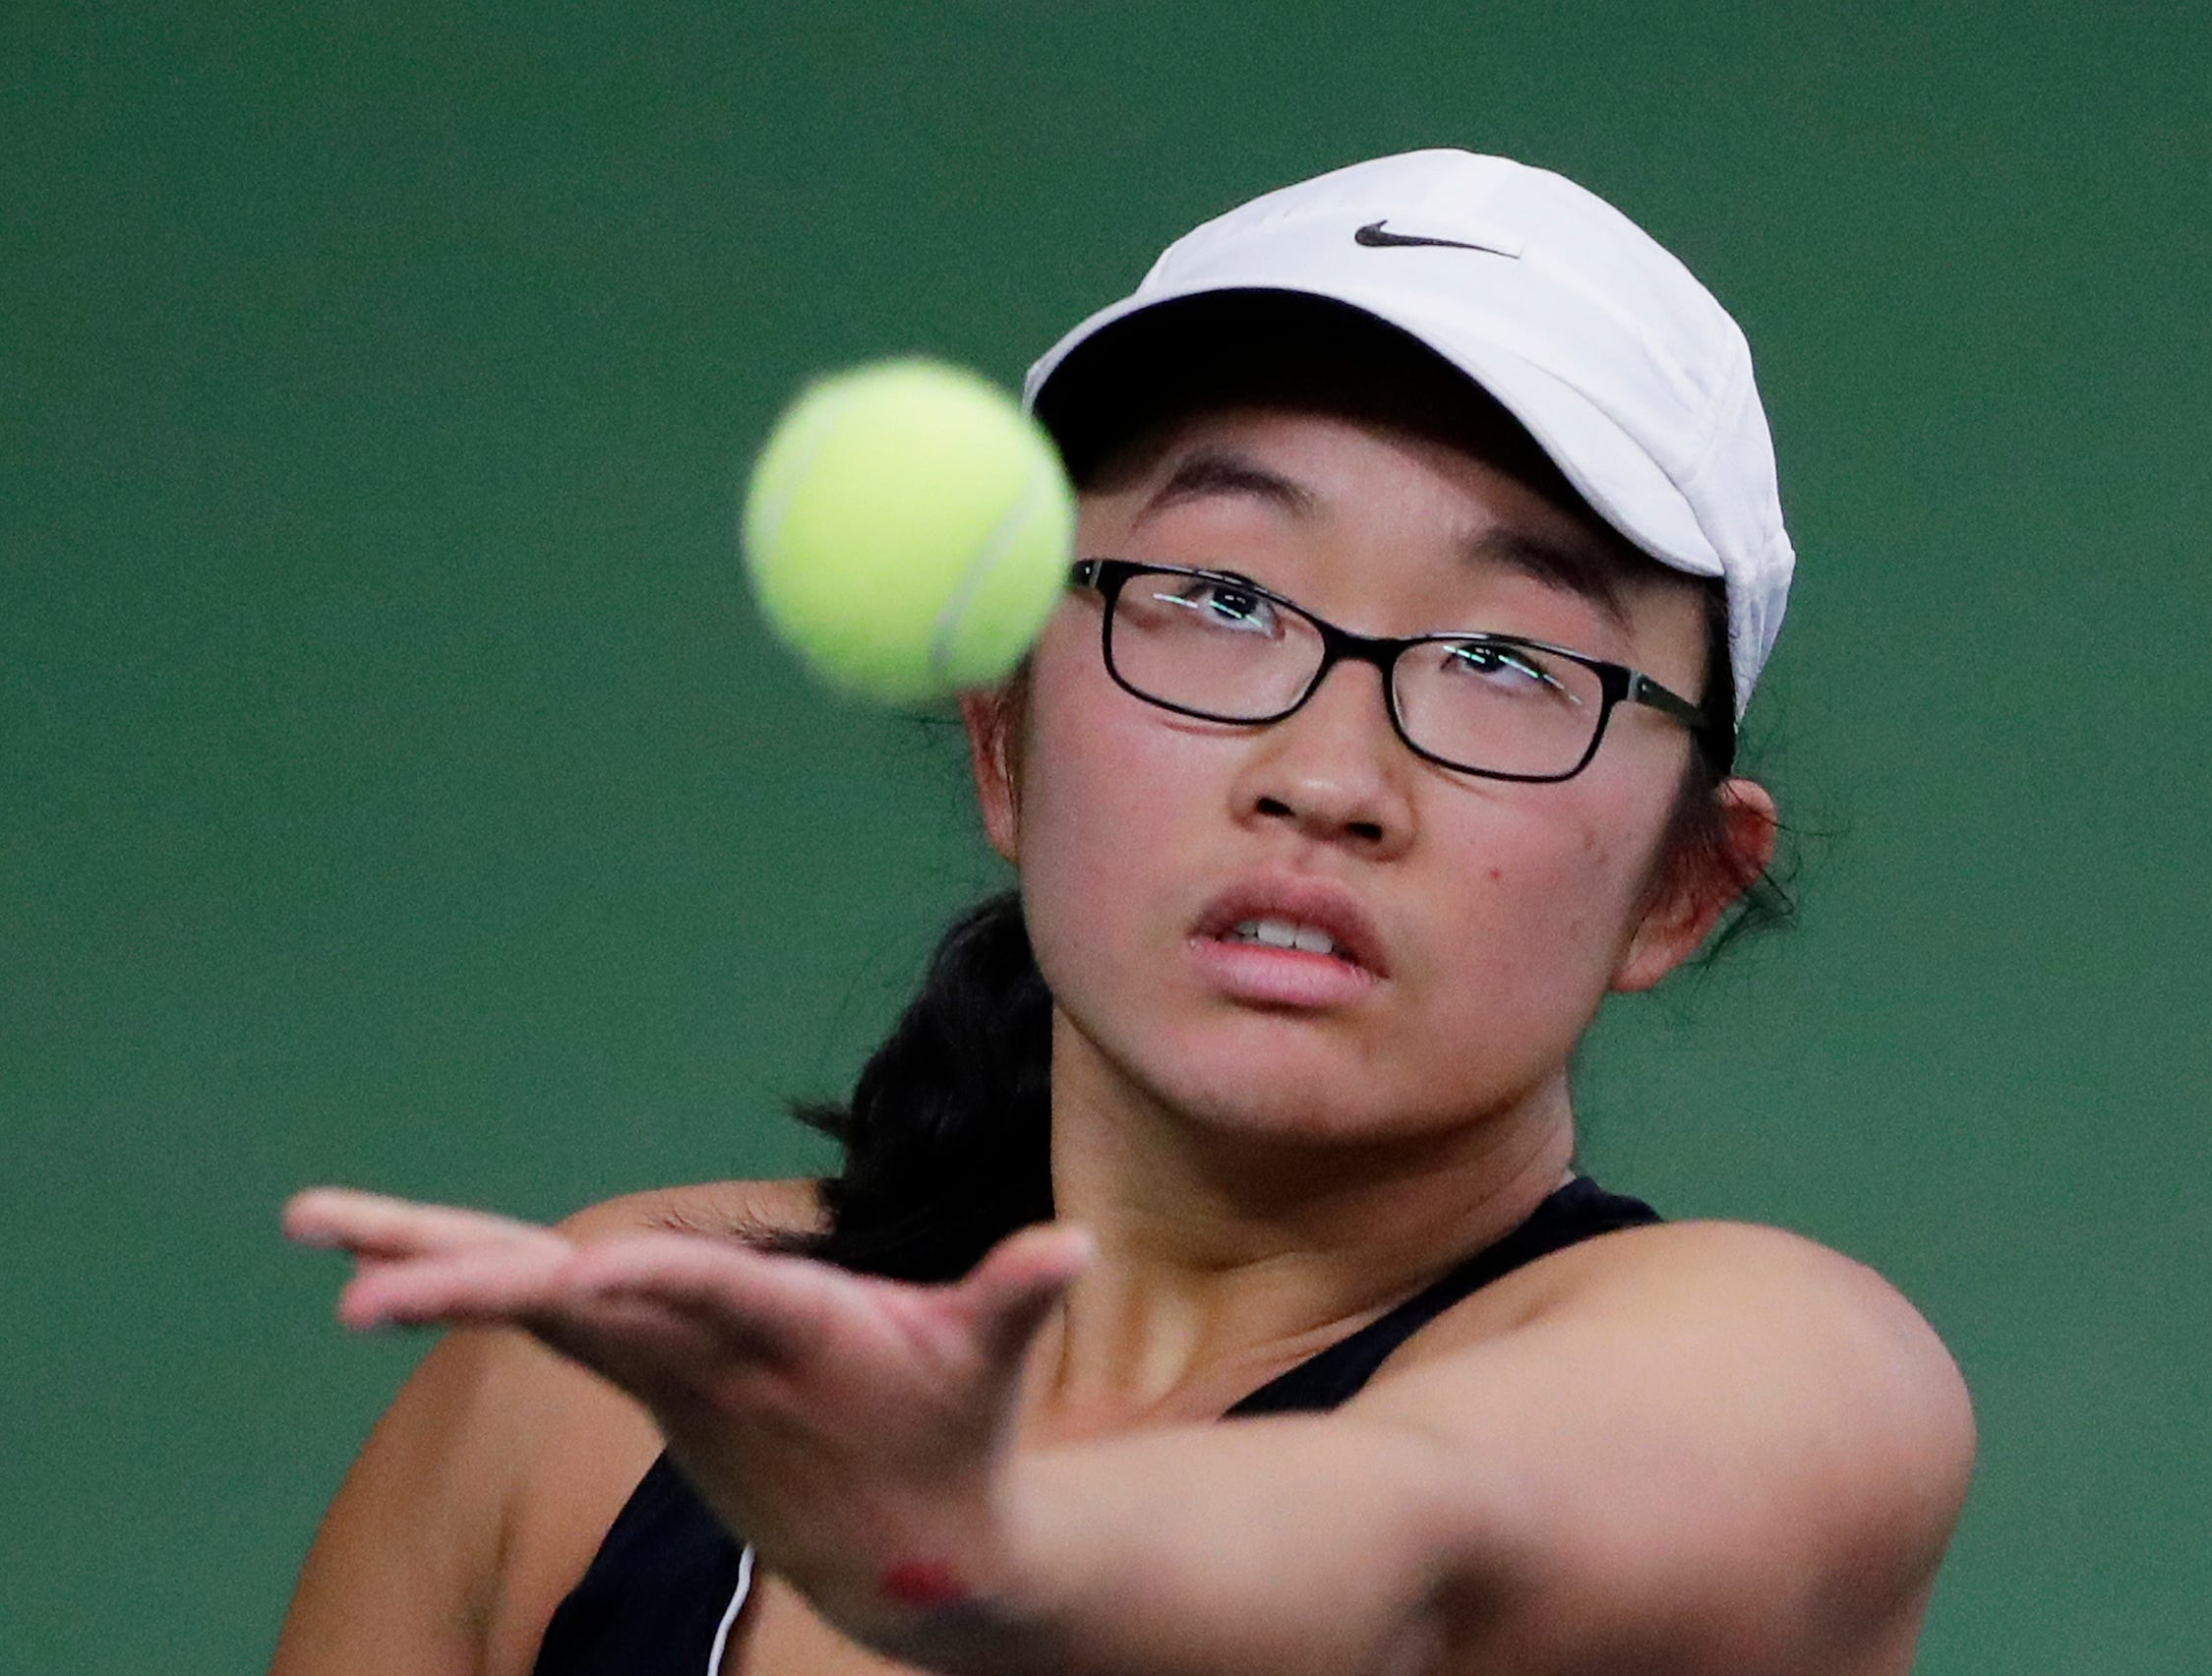 Stevens Point's Sabrina Tang serves in a Division 1 singles match at WIAA 2018 Girls State Tennis Tournament at Nielsen Tennis Stadium on Friday, October 12, 2018 in Madison, Wis.